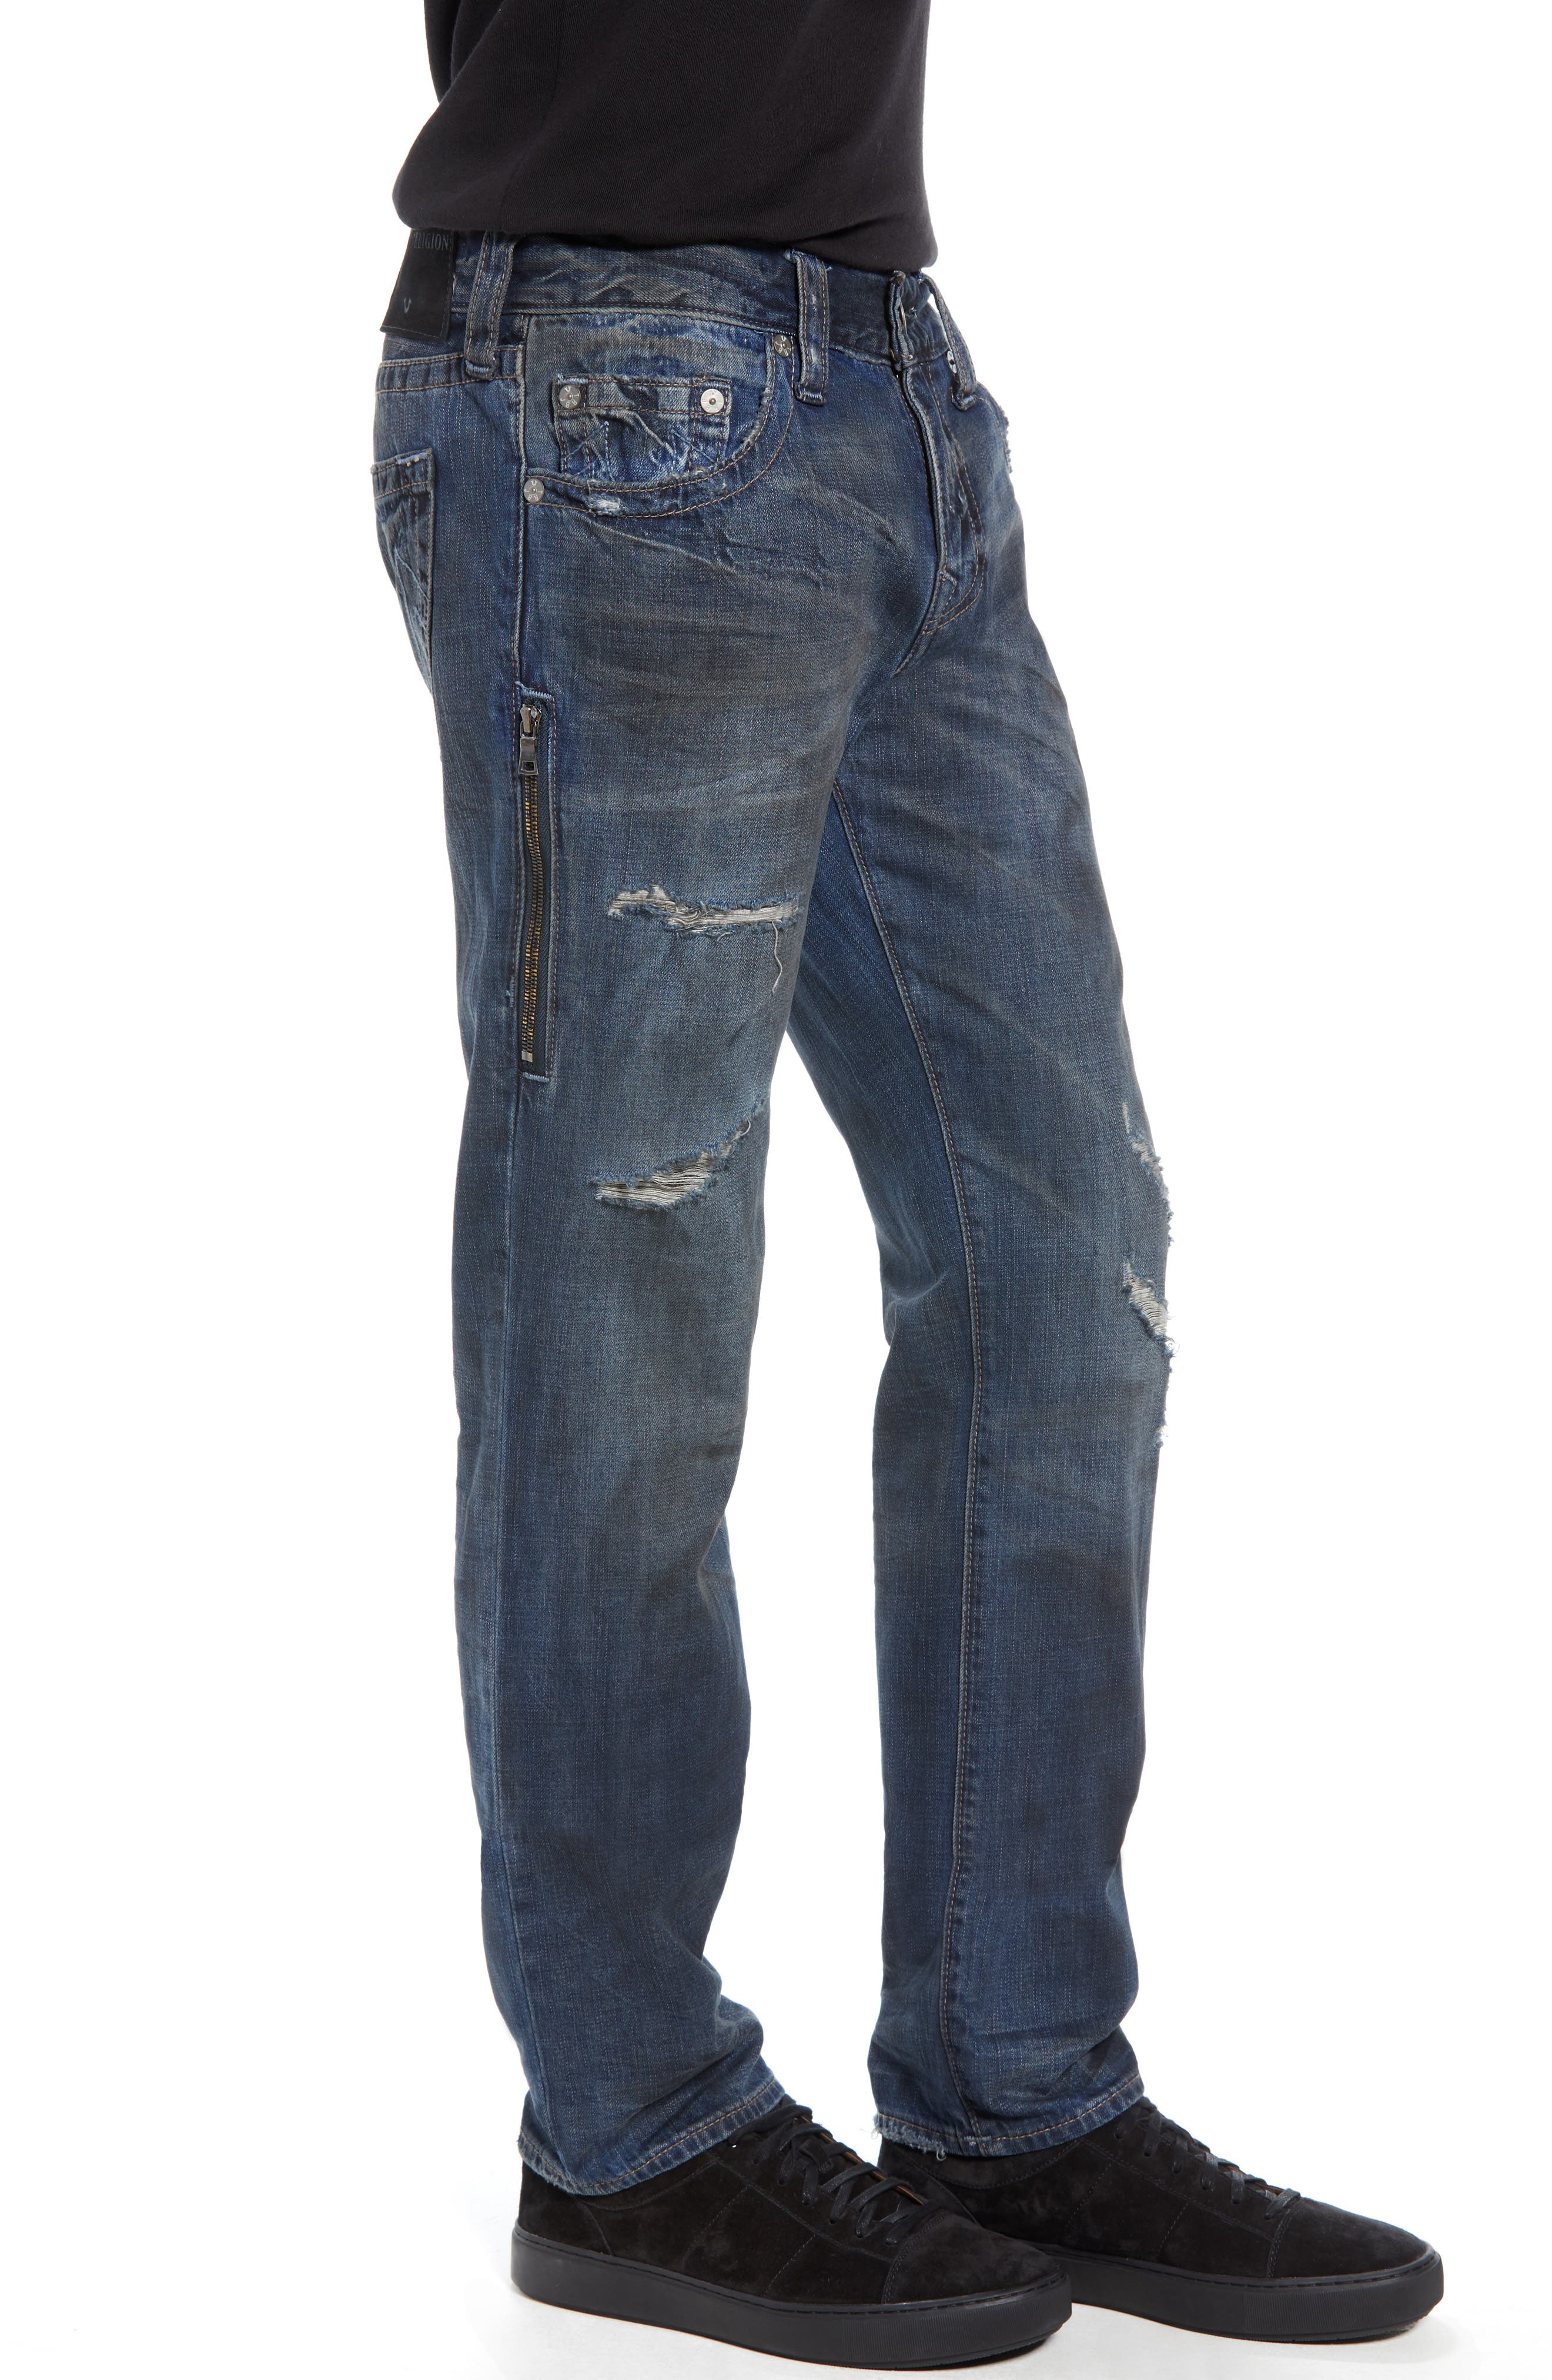 Rocco Distressed Skinny Fit Jeans,                             Alternate thumbnail 3, color,                             MIDNIGHT STORM